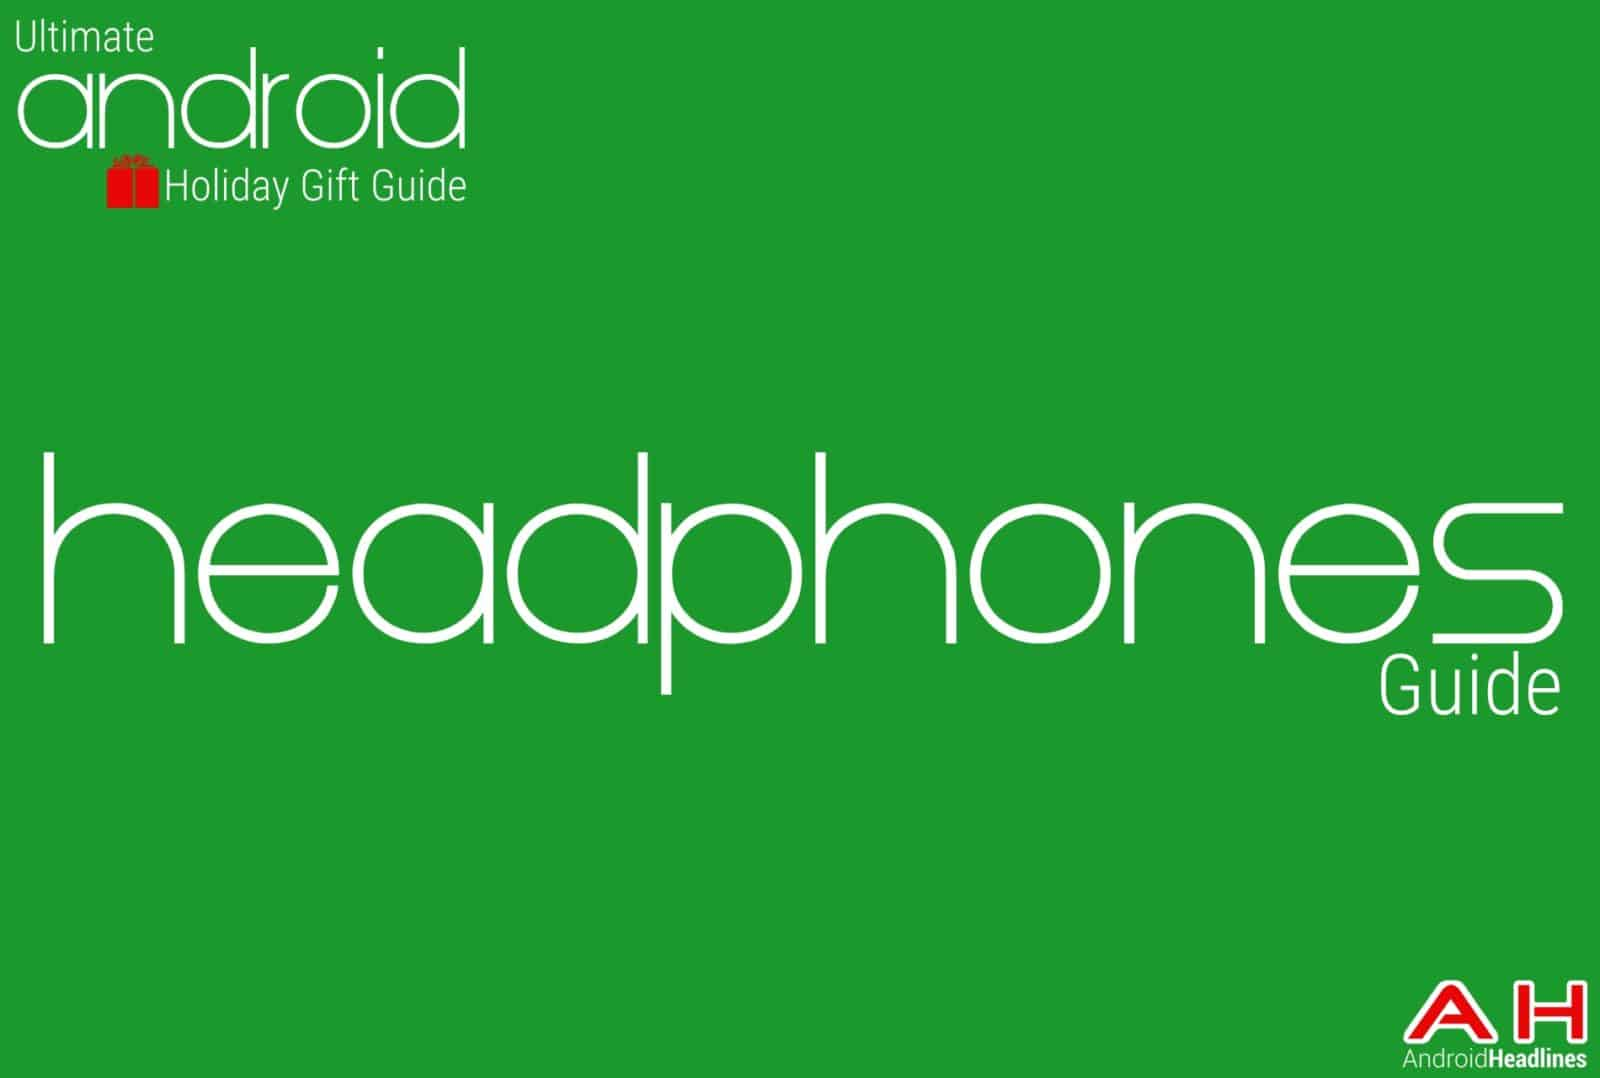 Best Mobile Headphones Guide - Android Holiday Gift Guide Top 10